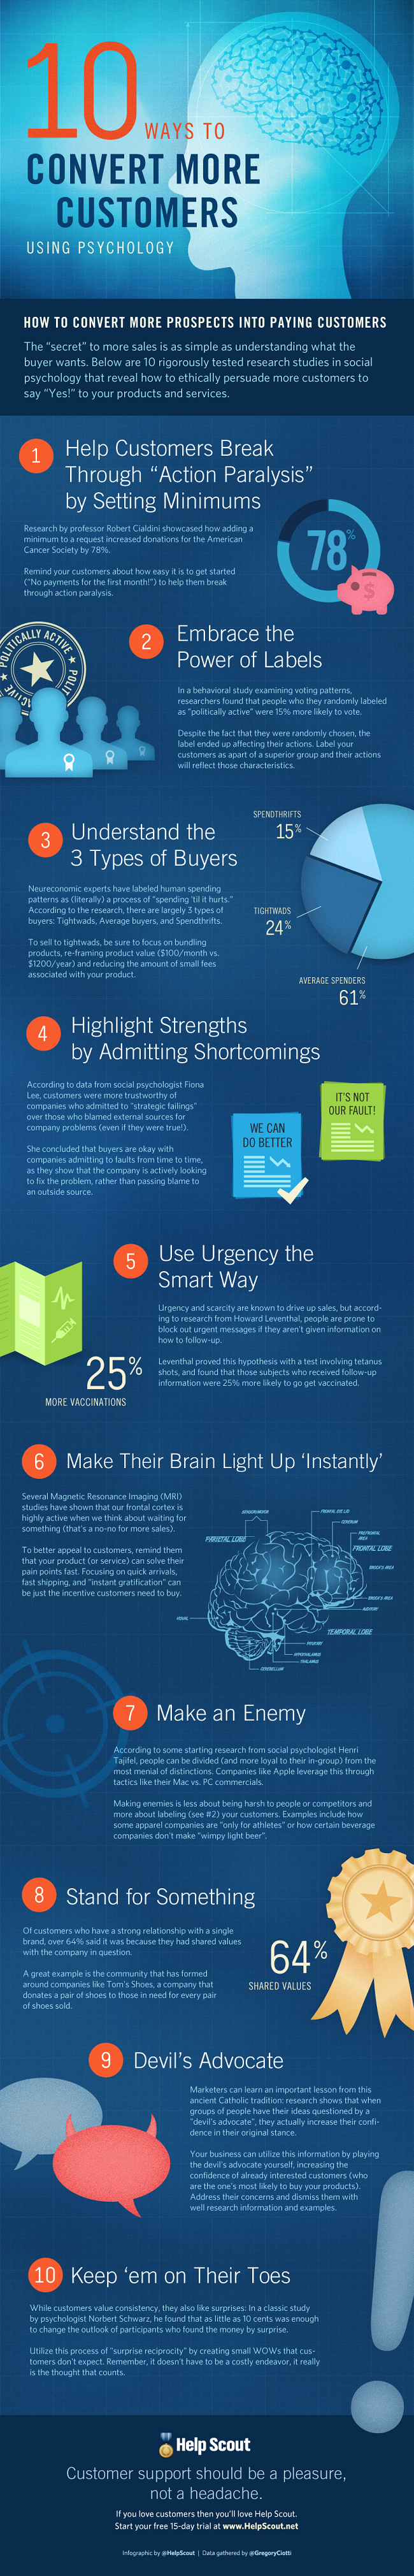 Convert more customers infographic